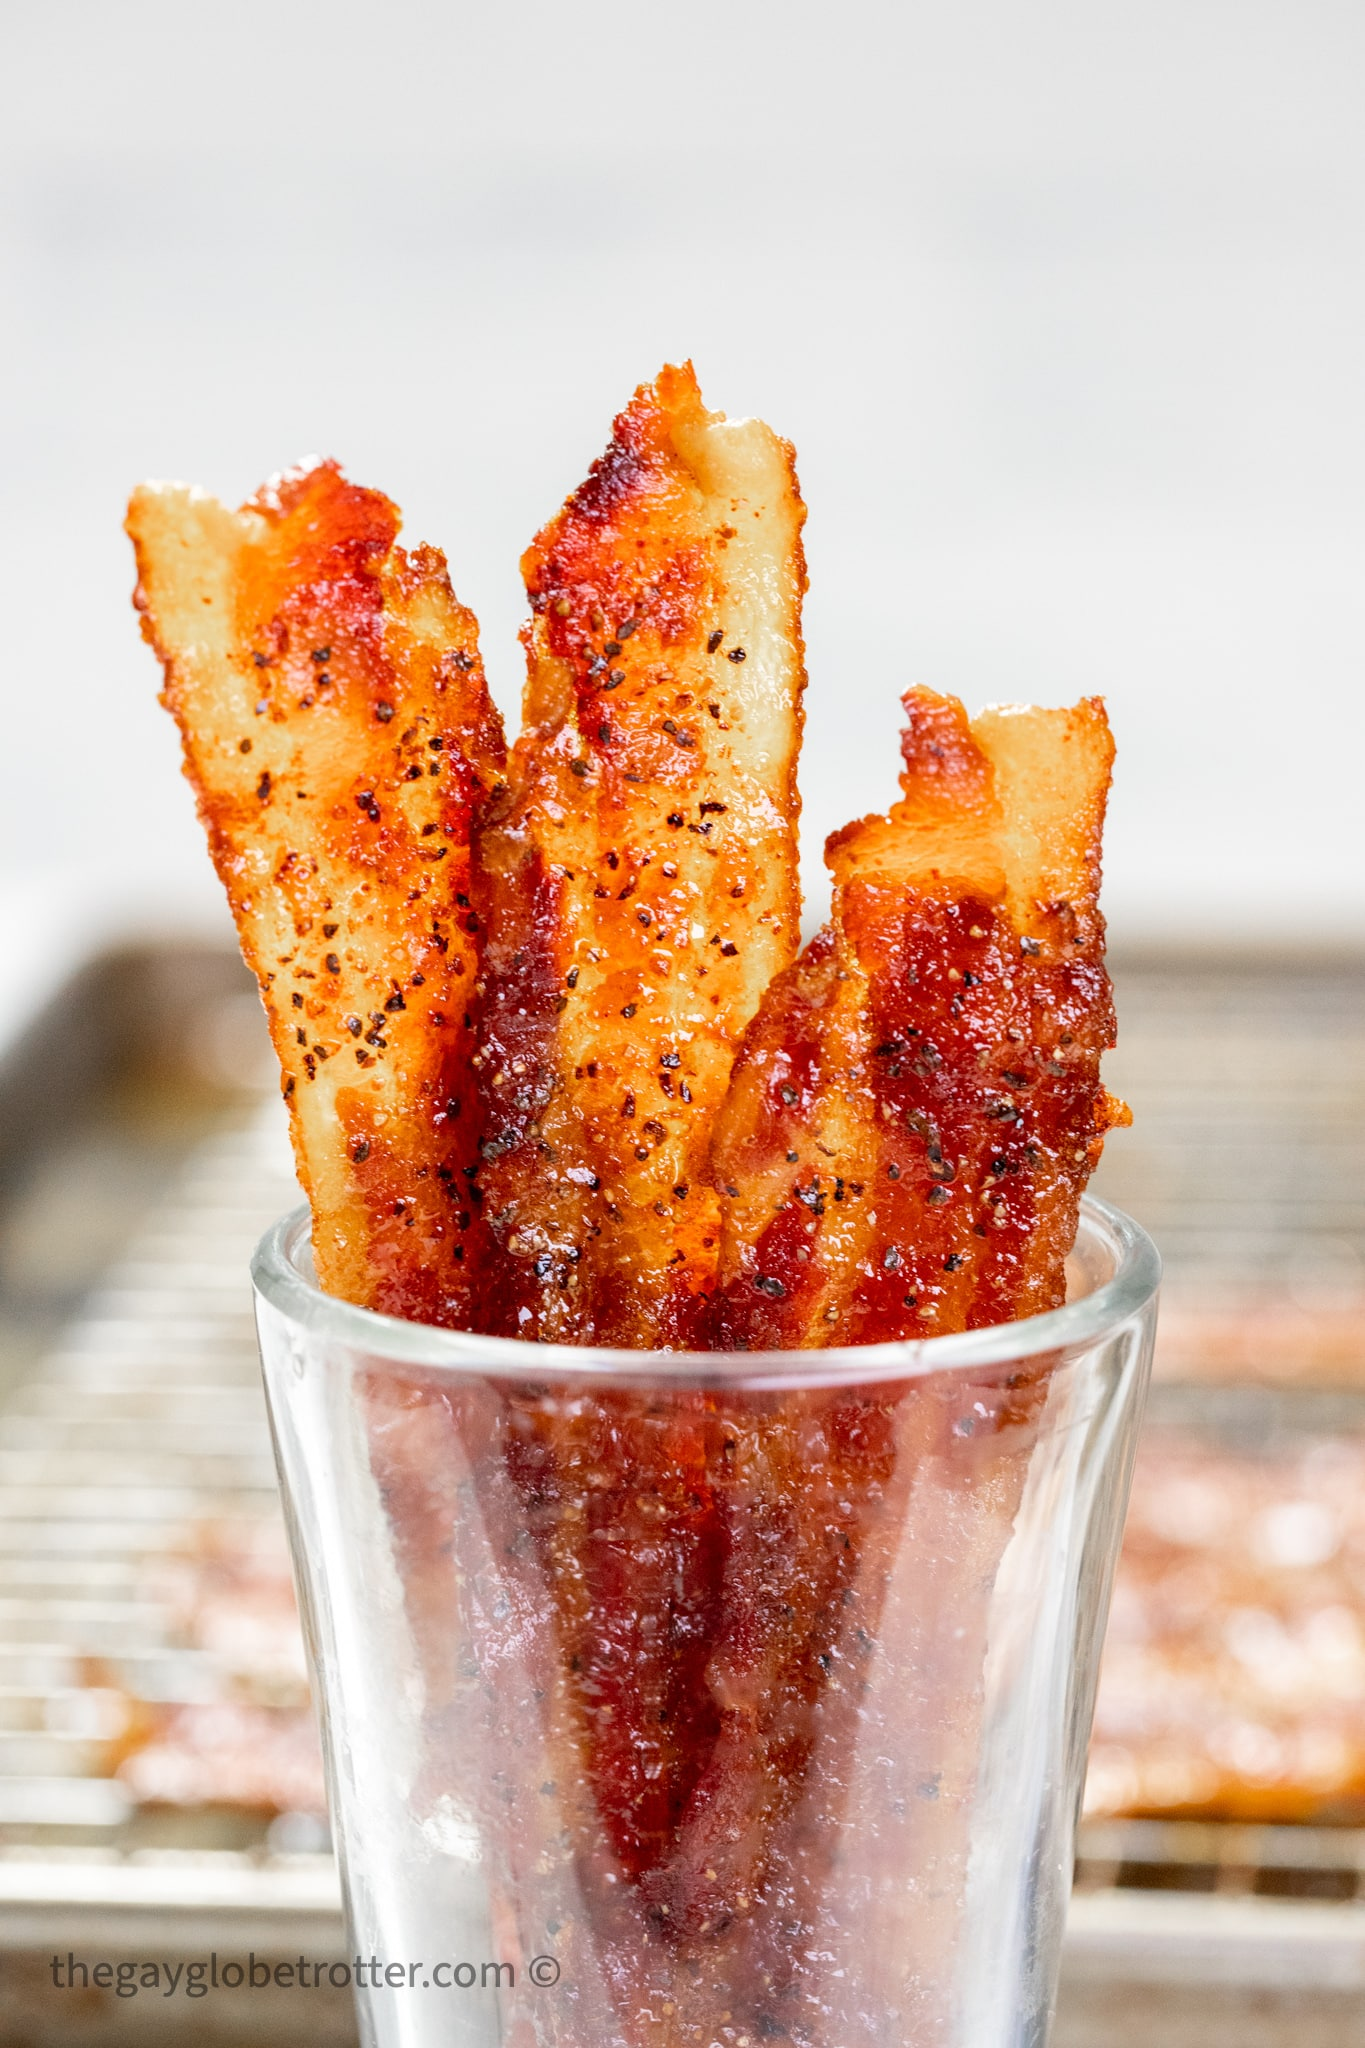 Candied bacon in a clear cup.